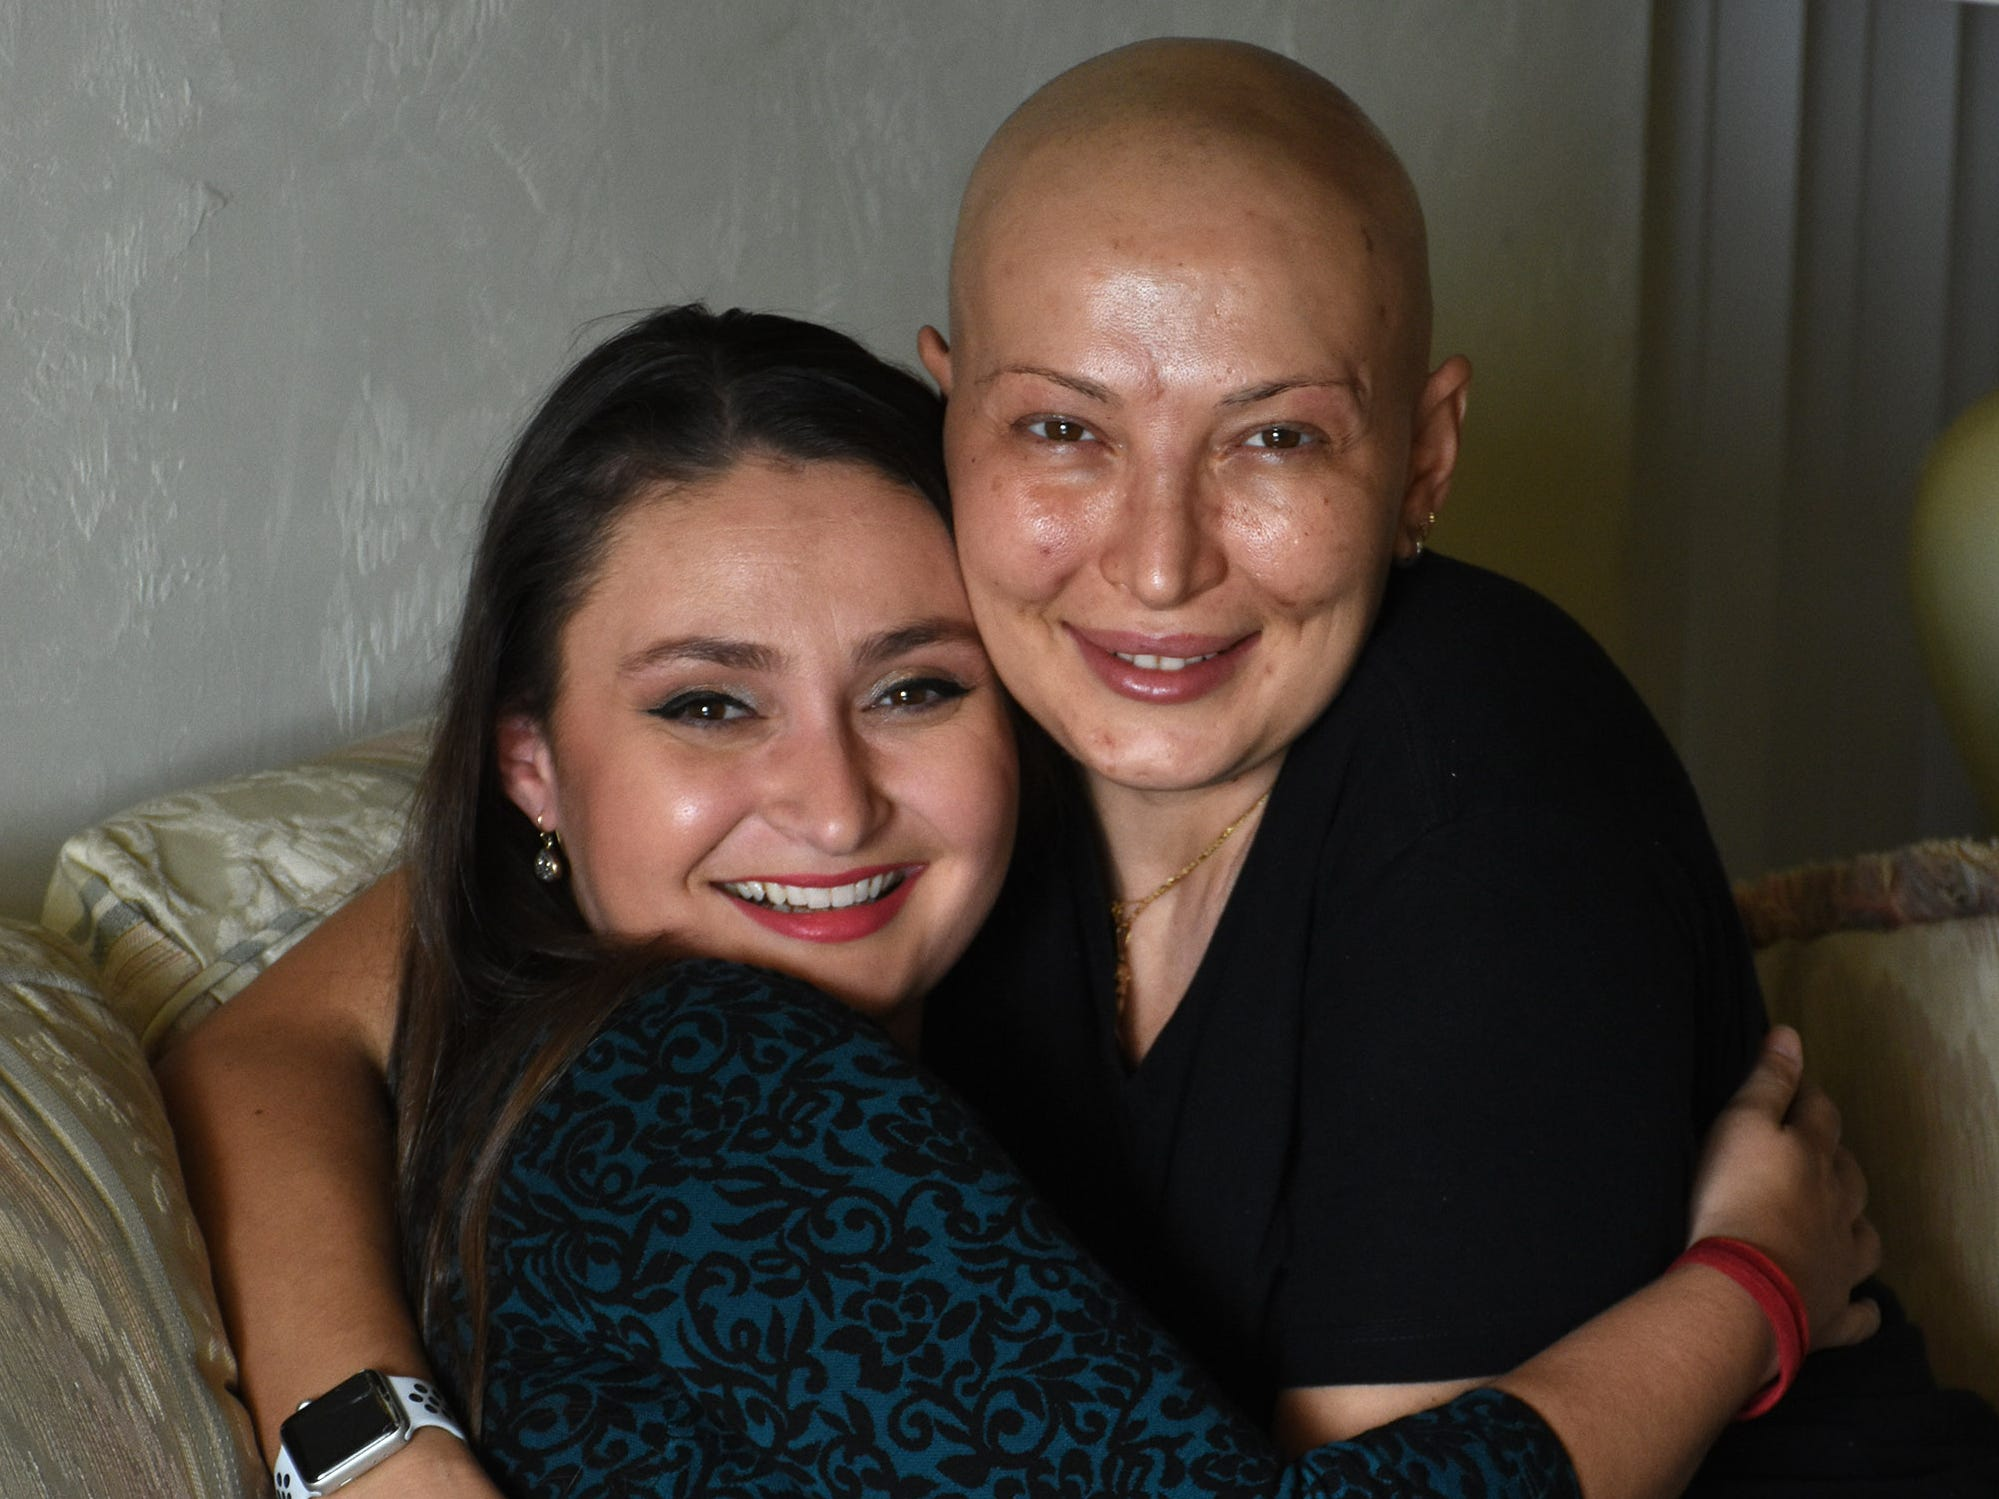 Photos: Friends help woman battling cancer